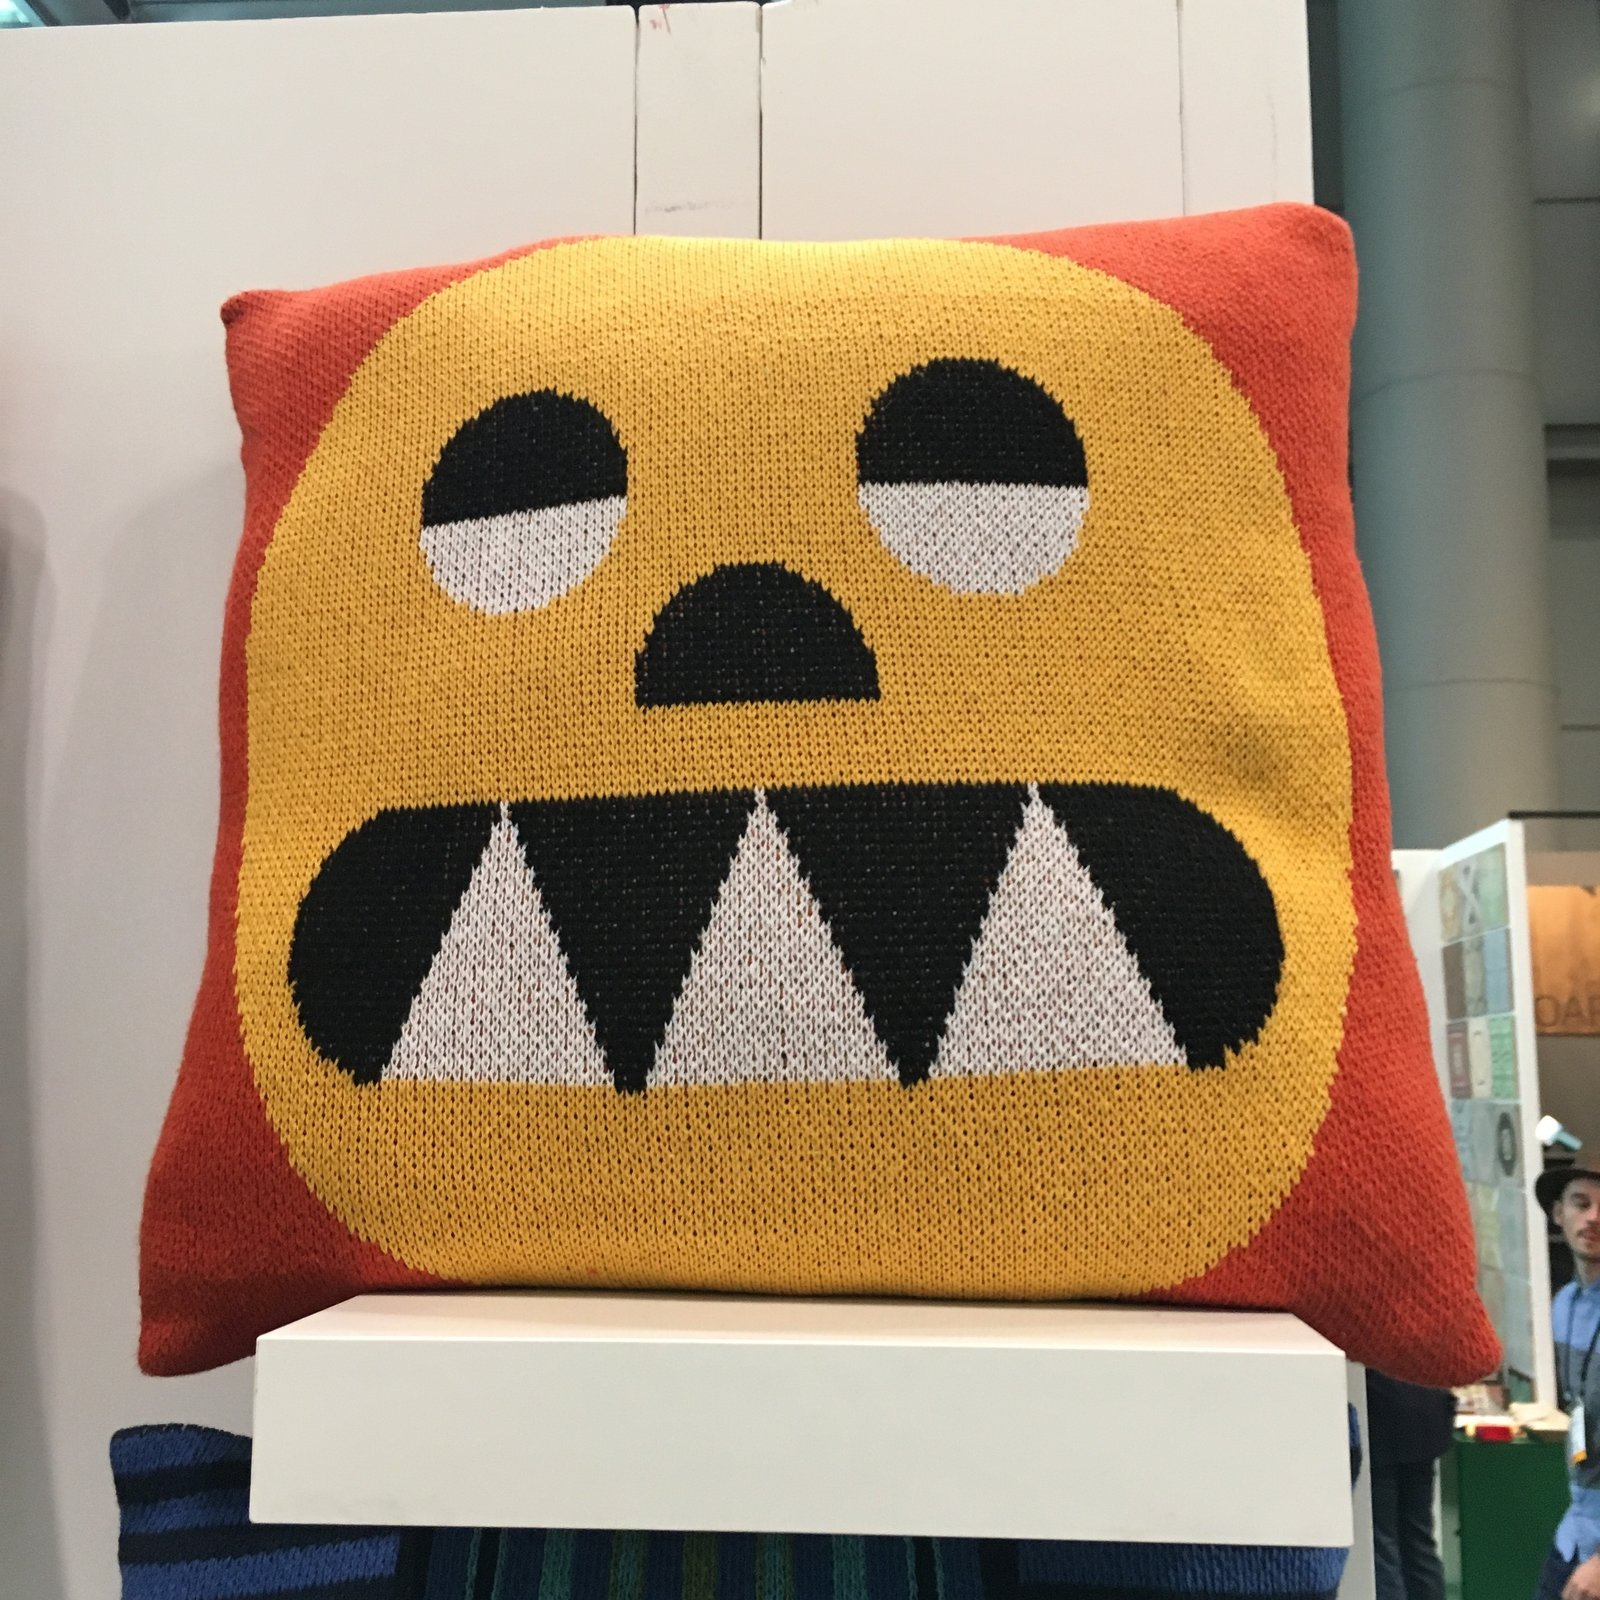 DittoHouse displayed their pillows and blankets at the Milk Stand, which was ICFF's only stoppable area on the show floor. Led by designer Molly Fitzgerald, DittoHouse utilizes pre- and post-consumer textile waste for their products. They do not introduce new dyes, which eliminates water waste and chemical run-off. Everything is made in the USA.  Photo 17 of 36 in The Best of New York Design Week 2017